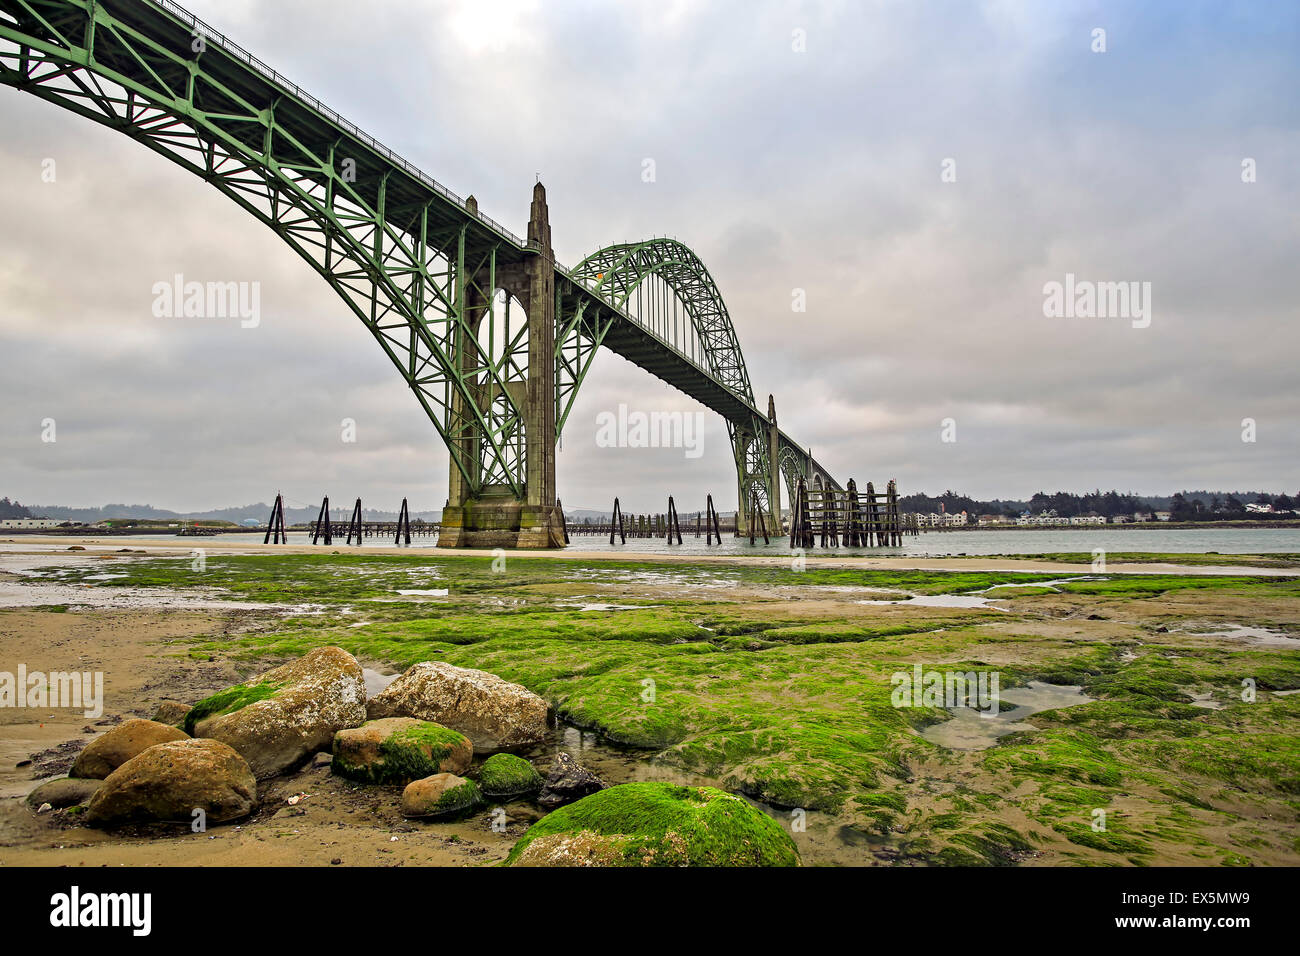 Les roches, Moss et Yaquina Bay Bridge, Newport, Oregon USA Photo Stock